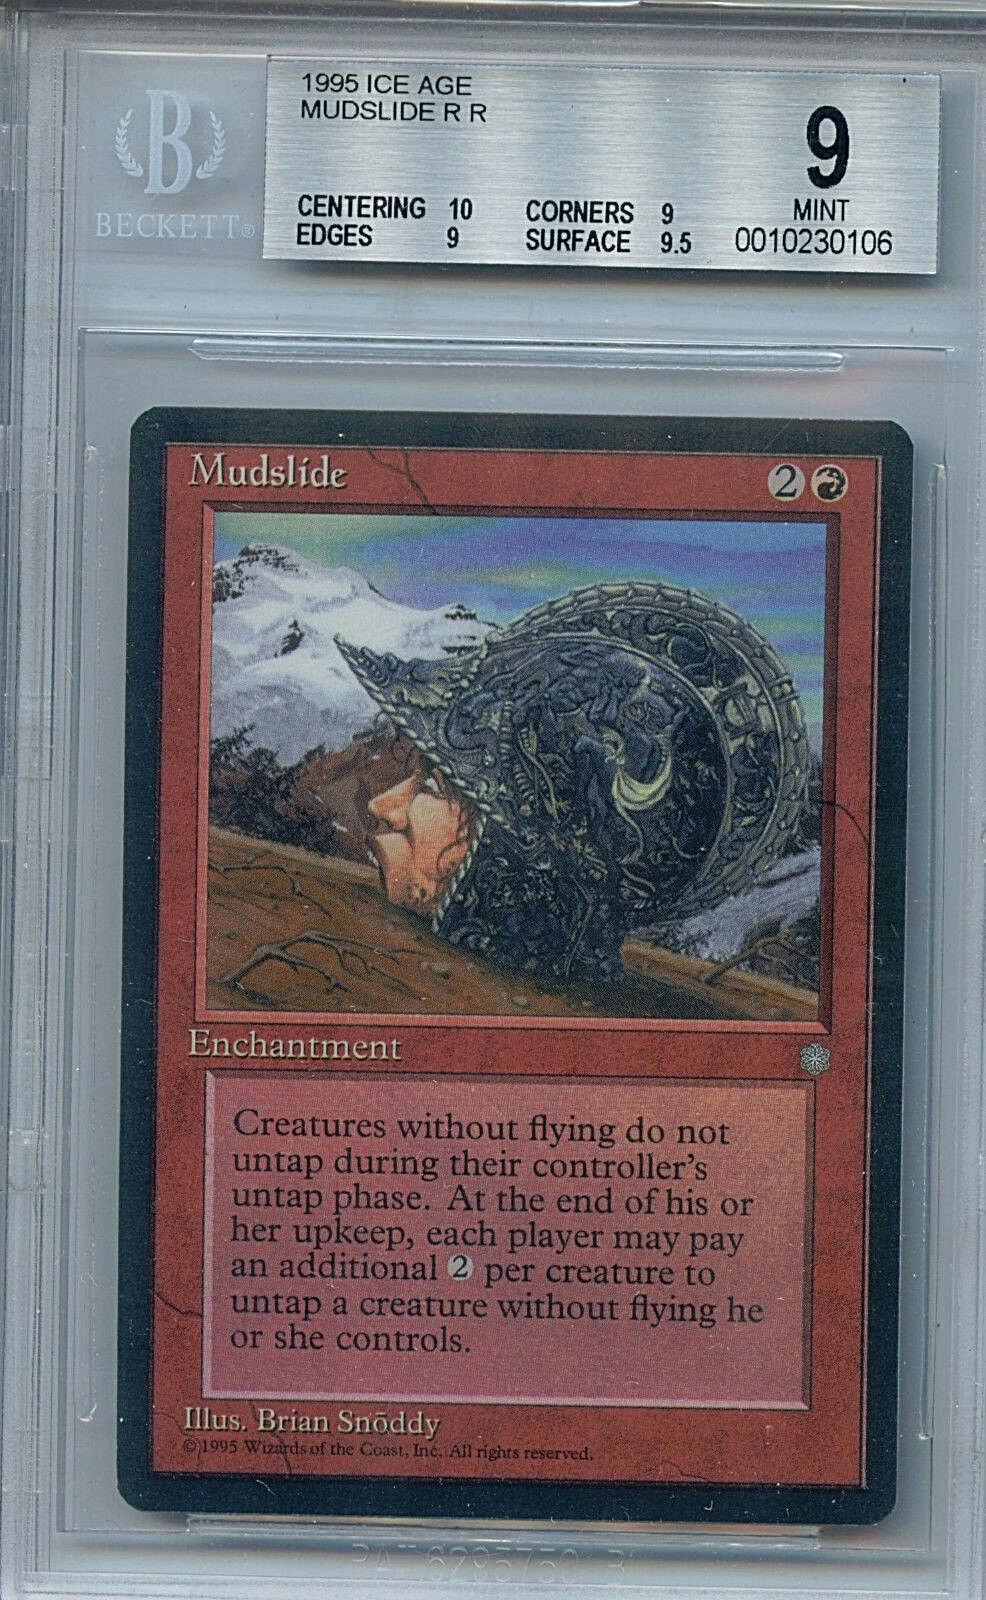 MTG Ice Age Mudslide BGS 9.0 Mint Magic Card with 10 centering WOTC 0106